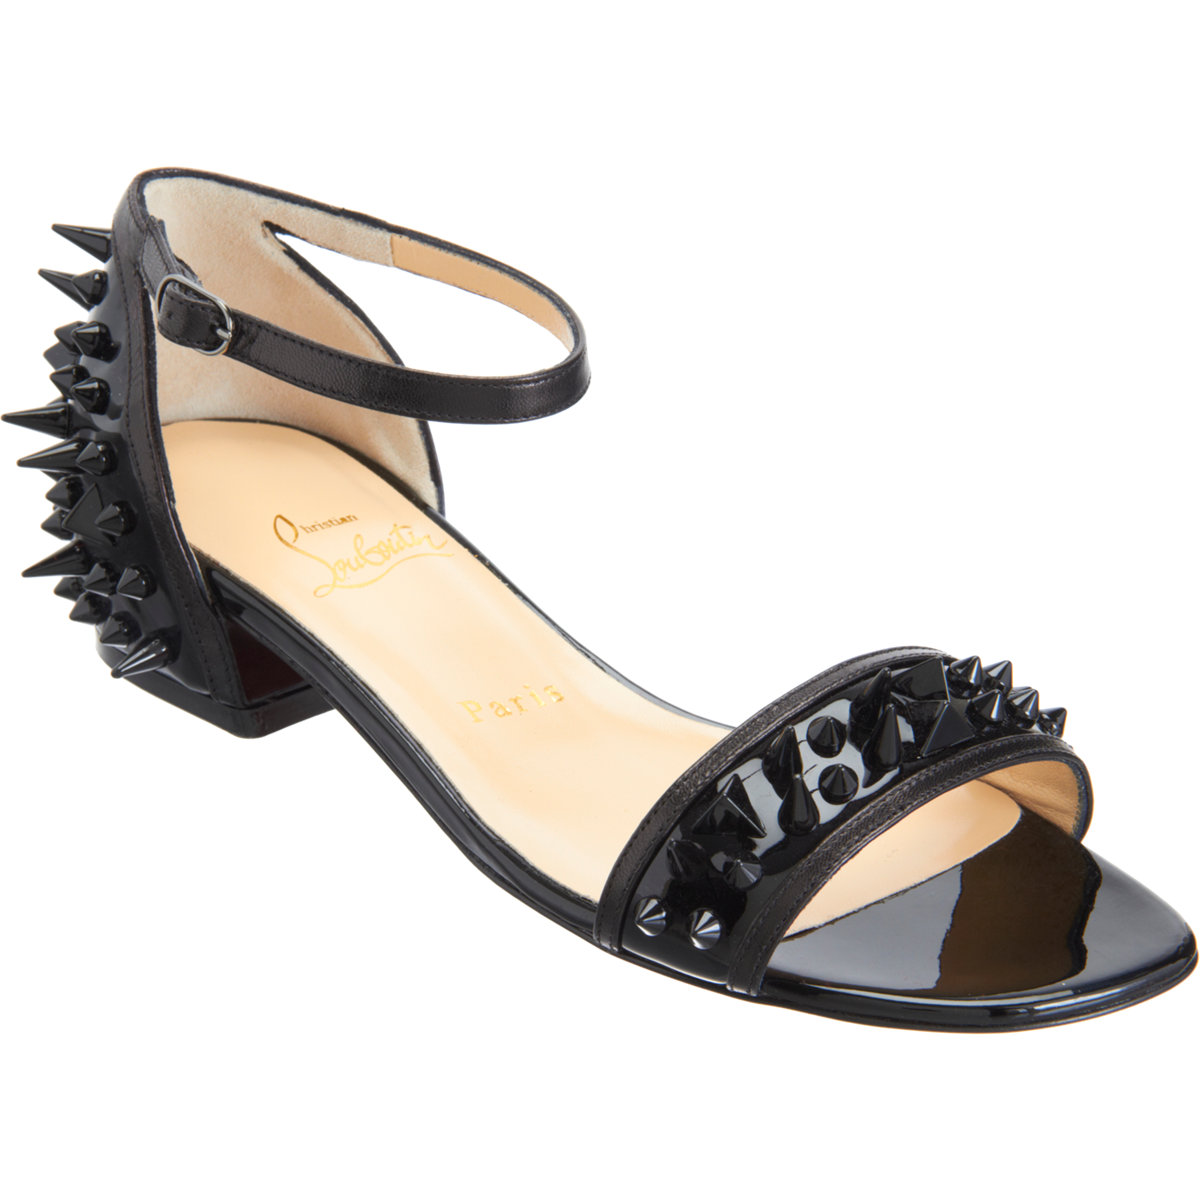 boutin shoes - christian louboutin Druide Spike sandals | The Little Arts Academy